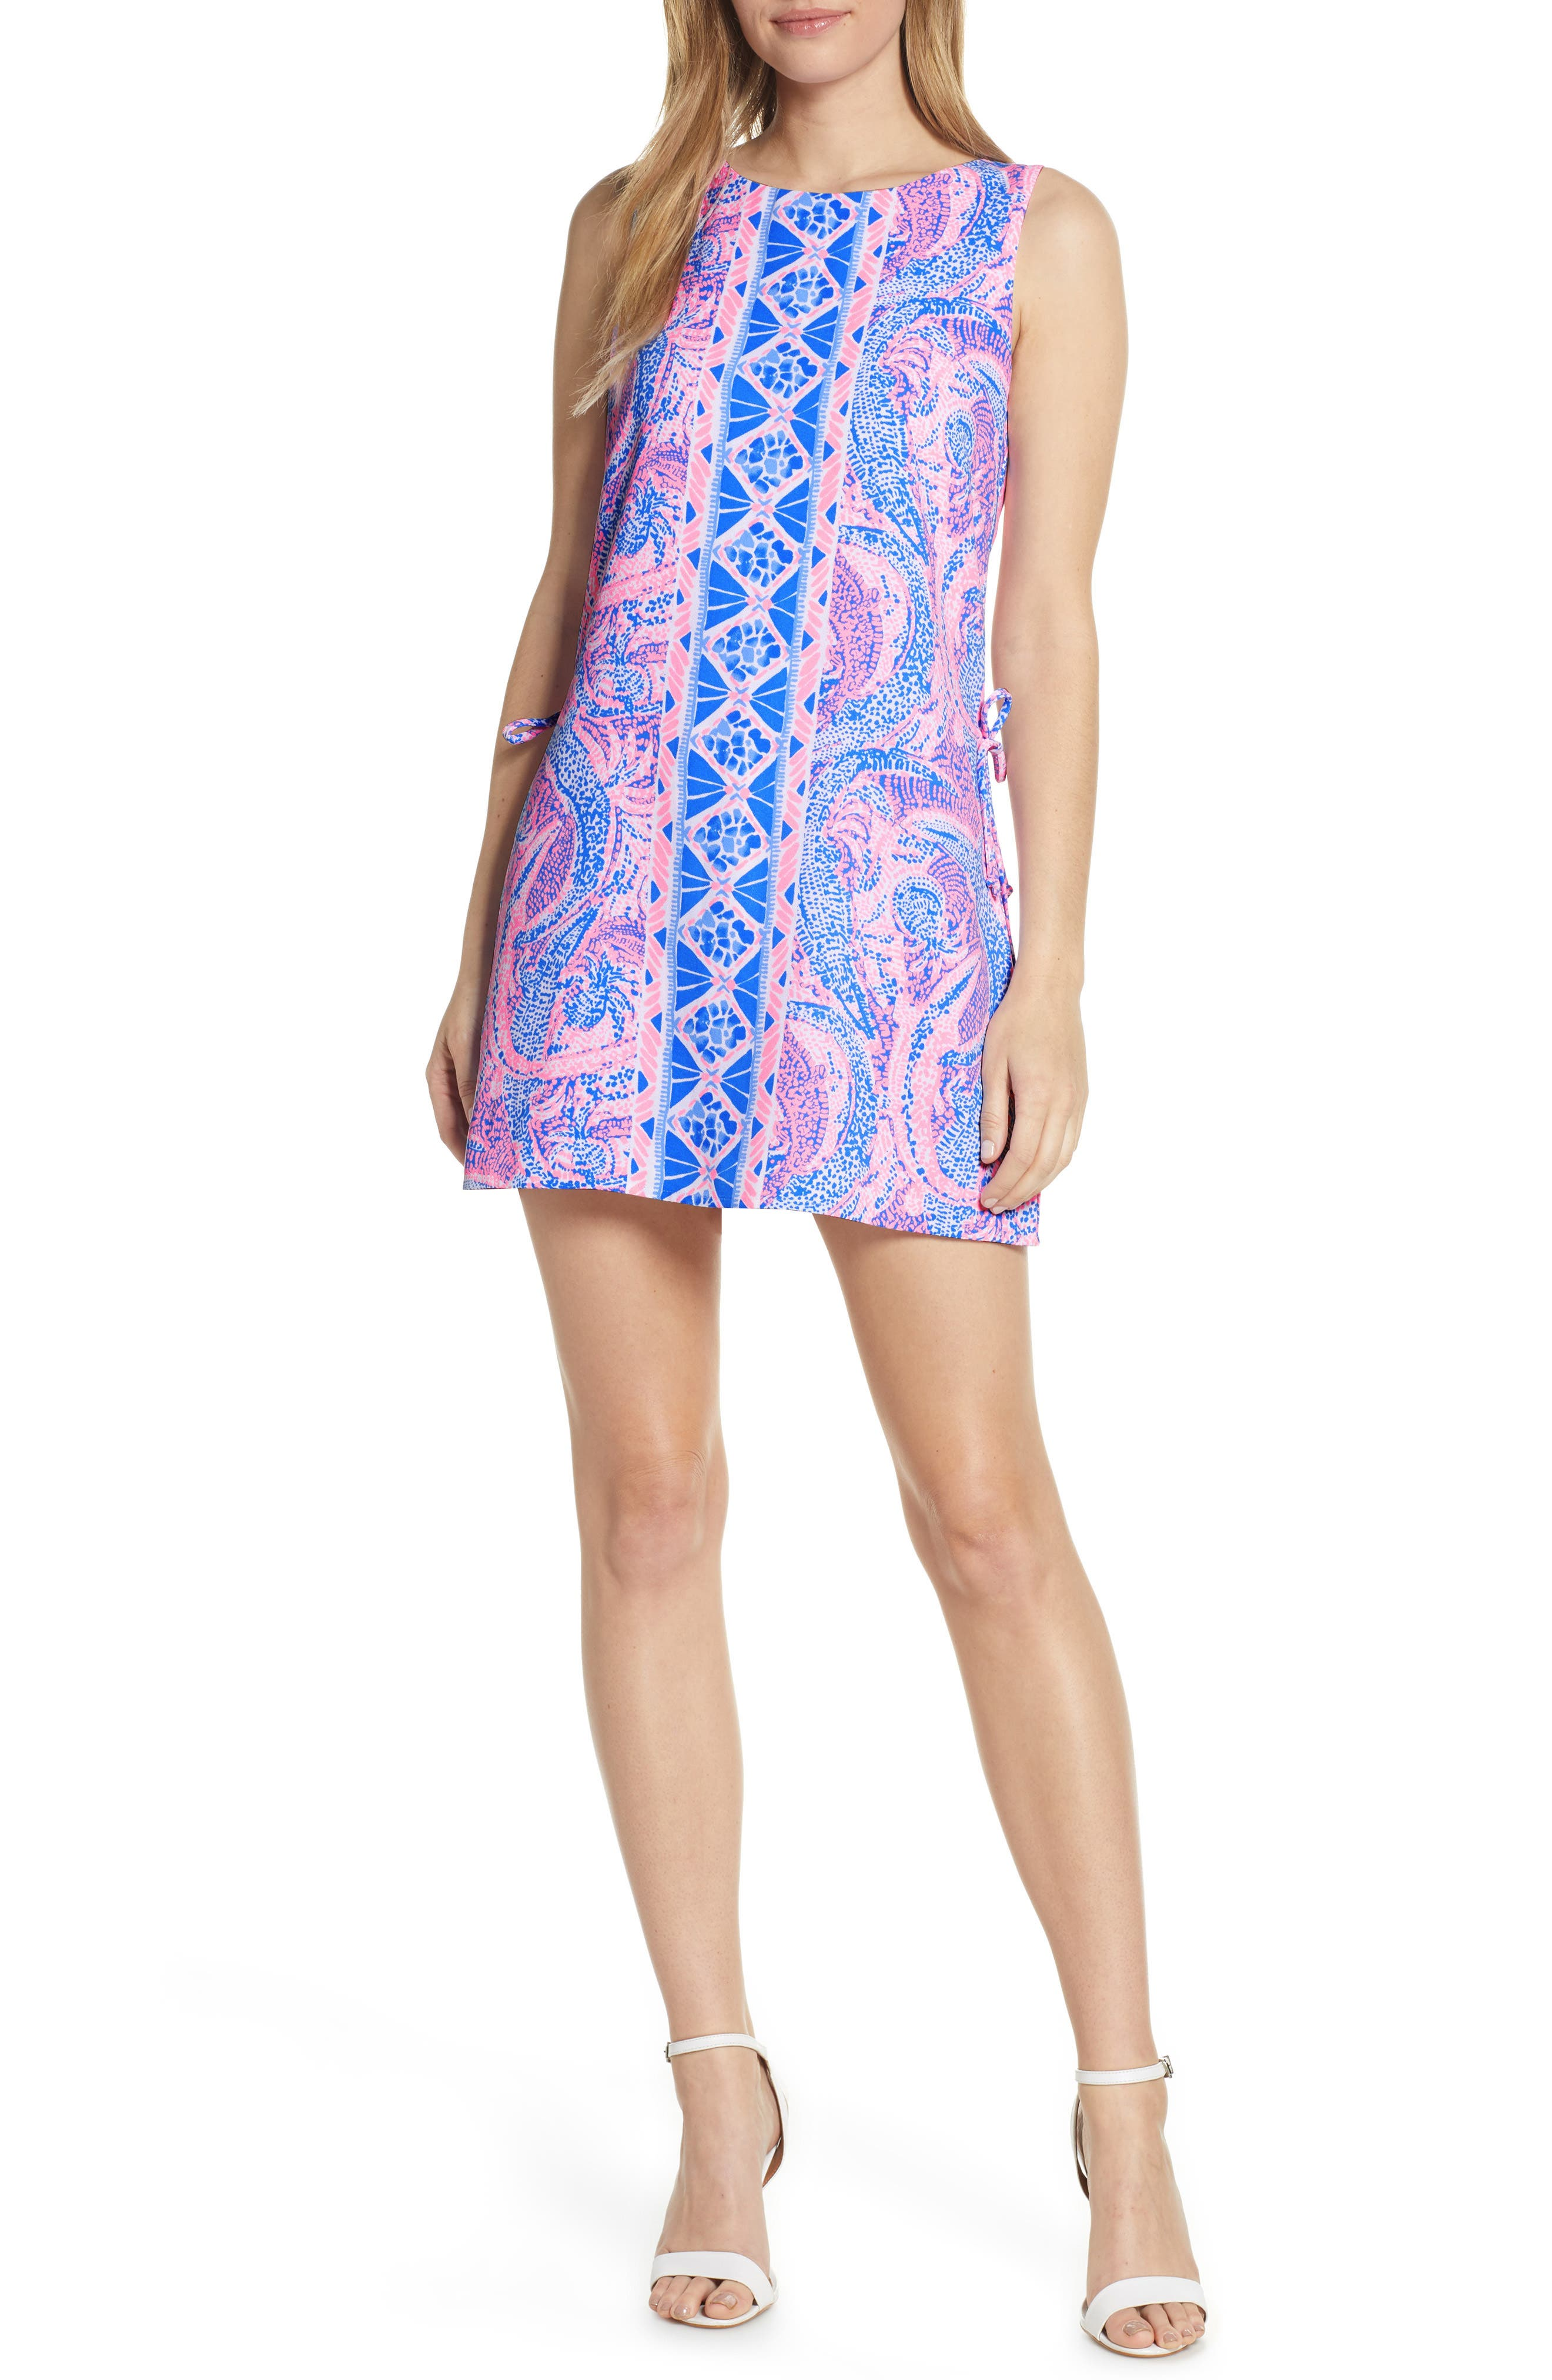 LILLY PULITZER<SUP>®</SUP> Donna Romper Dress, Main, color, COASTAL BLUE MAYBE GATO